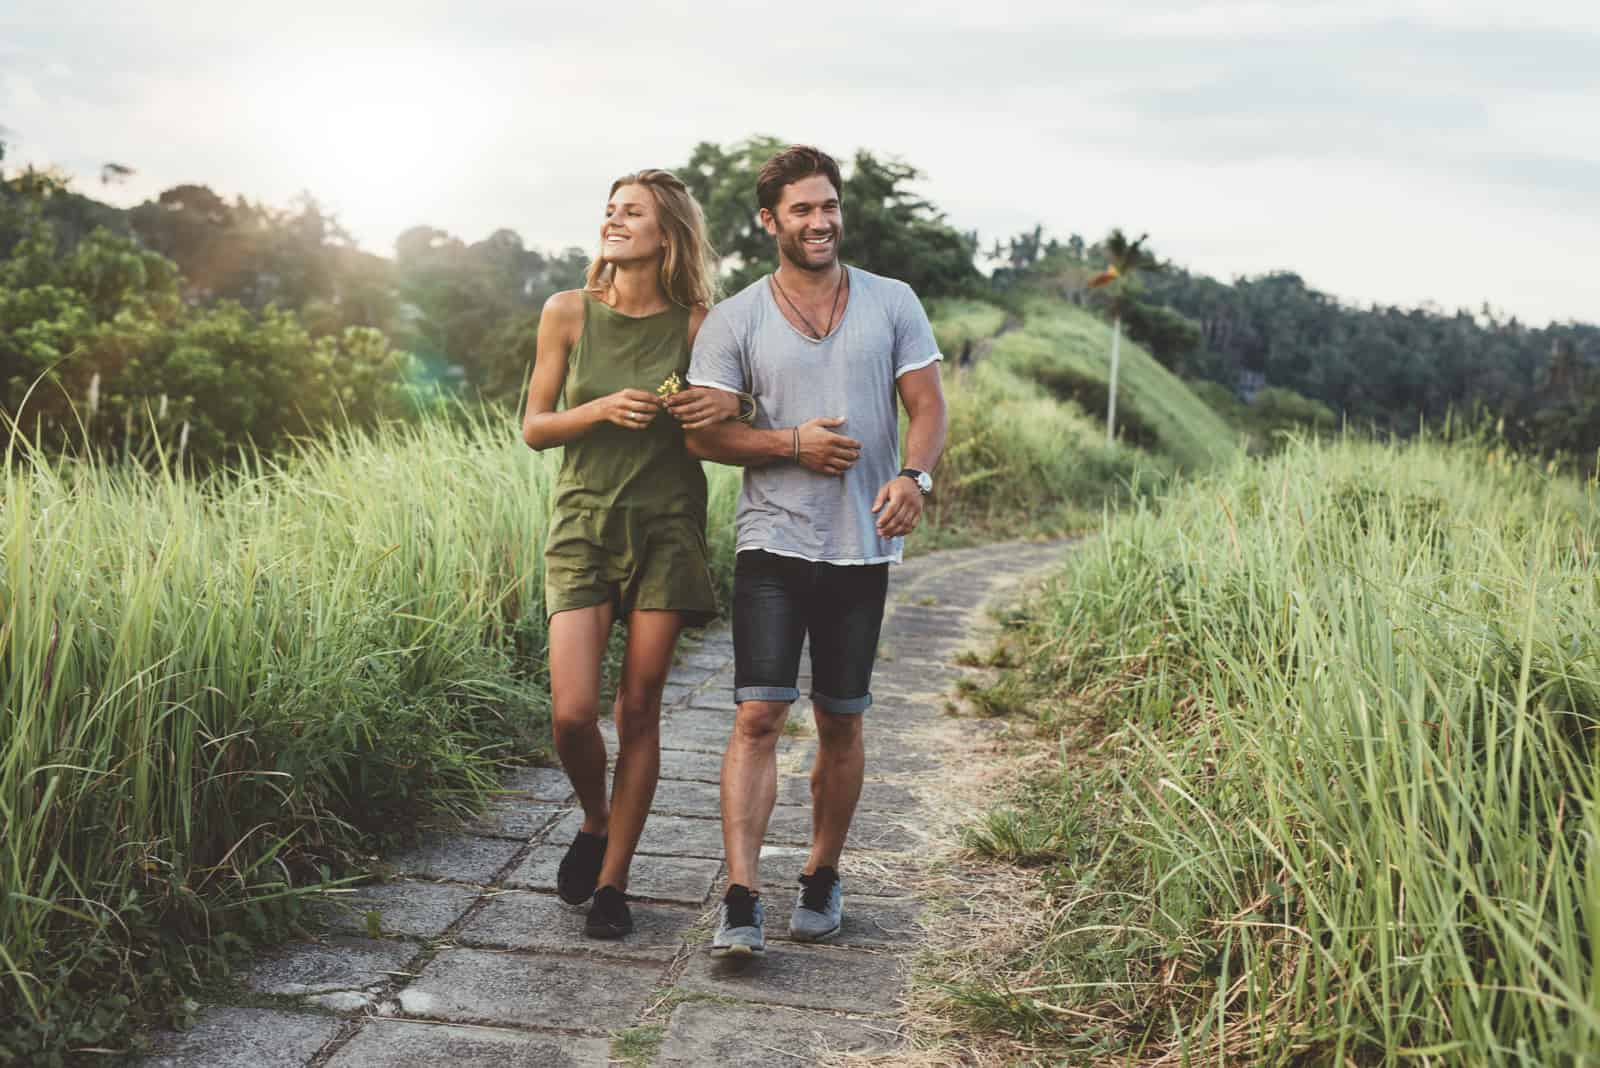 a man and a woman are walking in the park